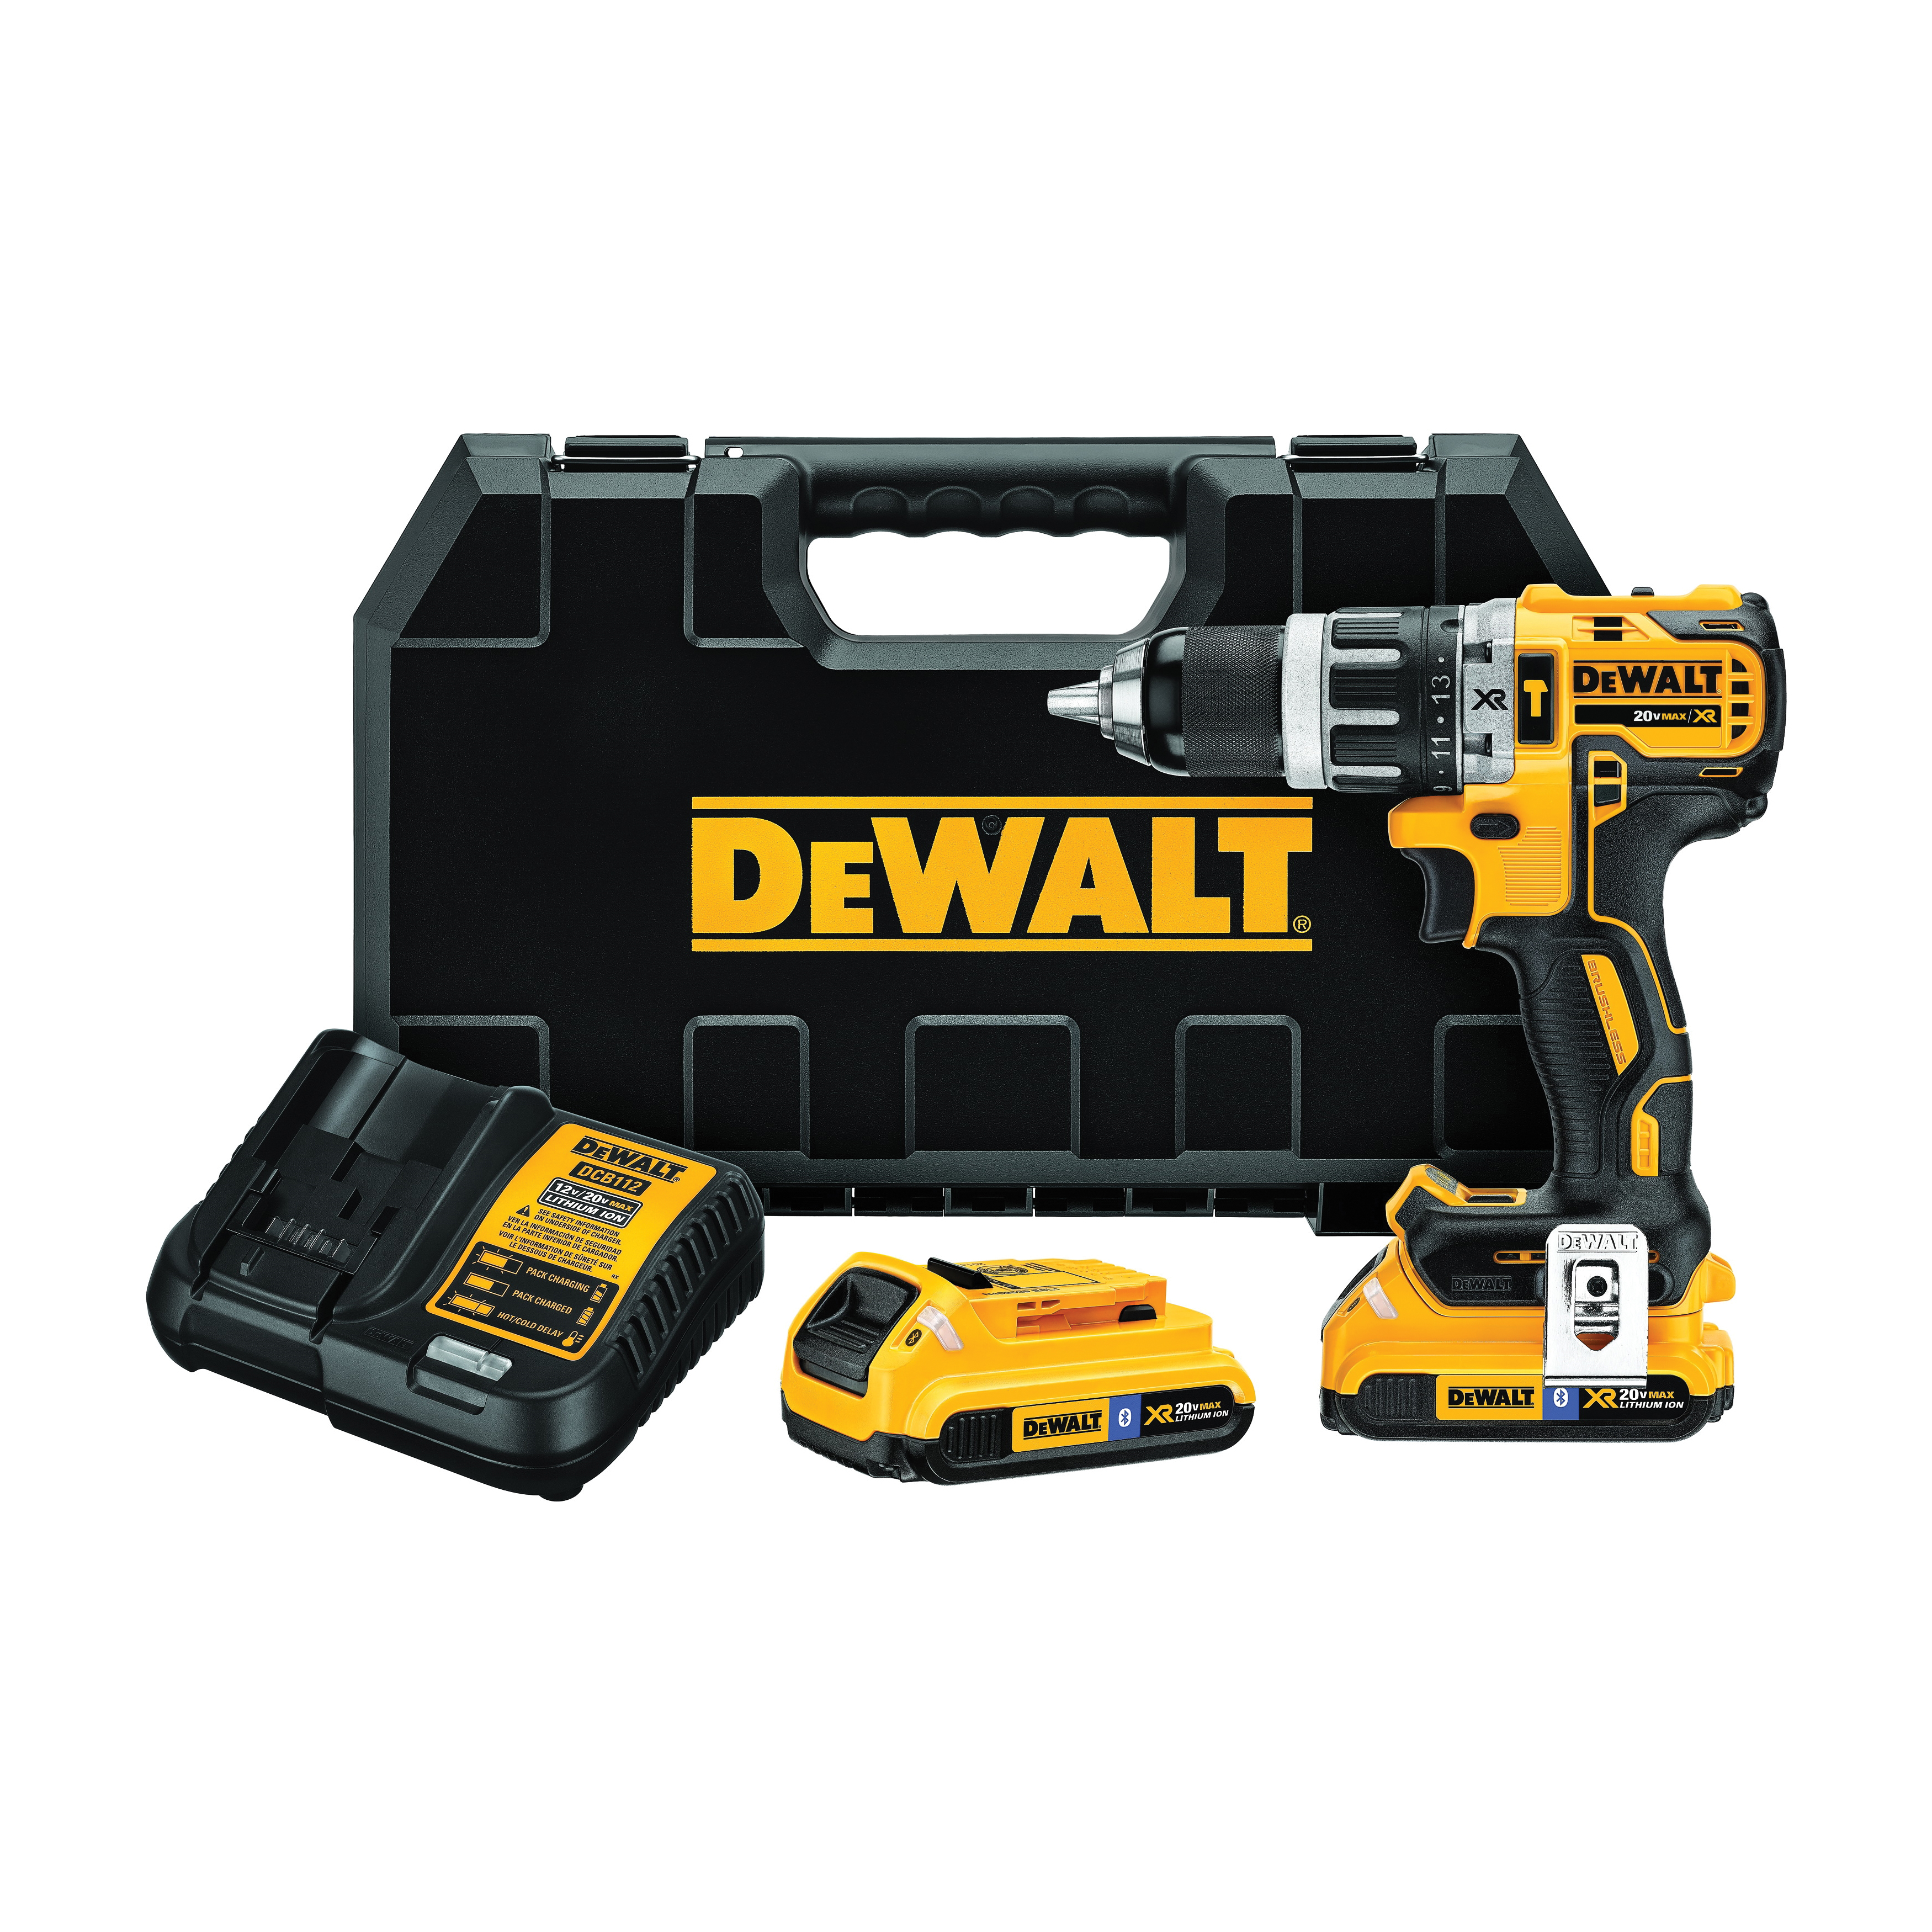 DeWALT® 20V MAX* DCD796D2BT XR™ Compact Lightweight Cordless Hammer Drill Kit, 1/2 in Keyless/Metal Ratcheting Chuck, 20 VDC, 2000 rpm No-Load, Lithium-Ion Battery